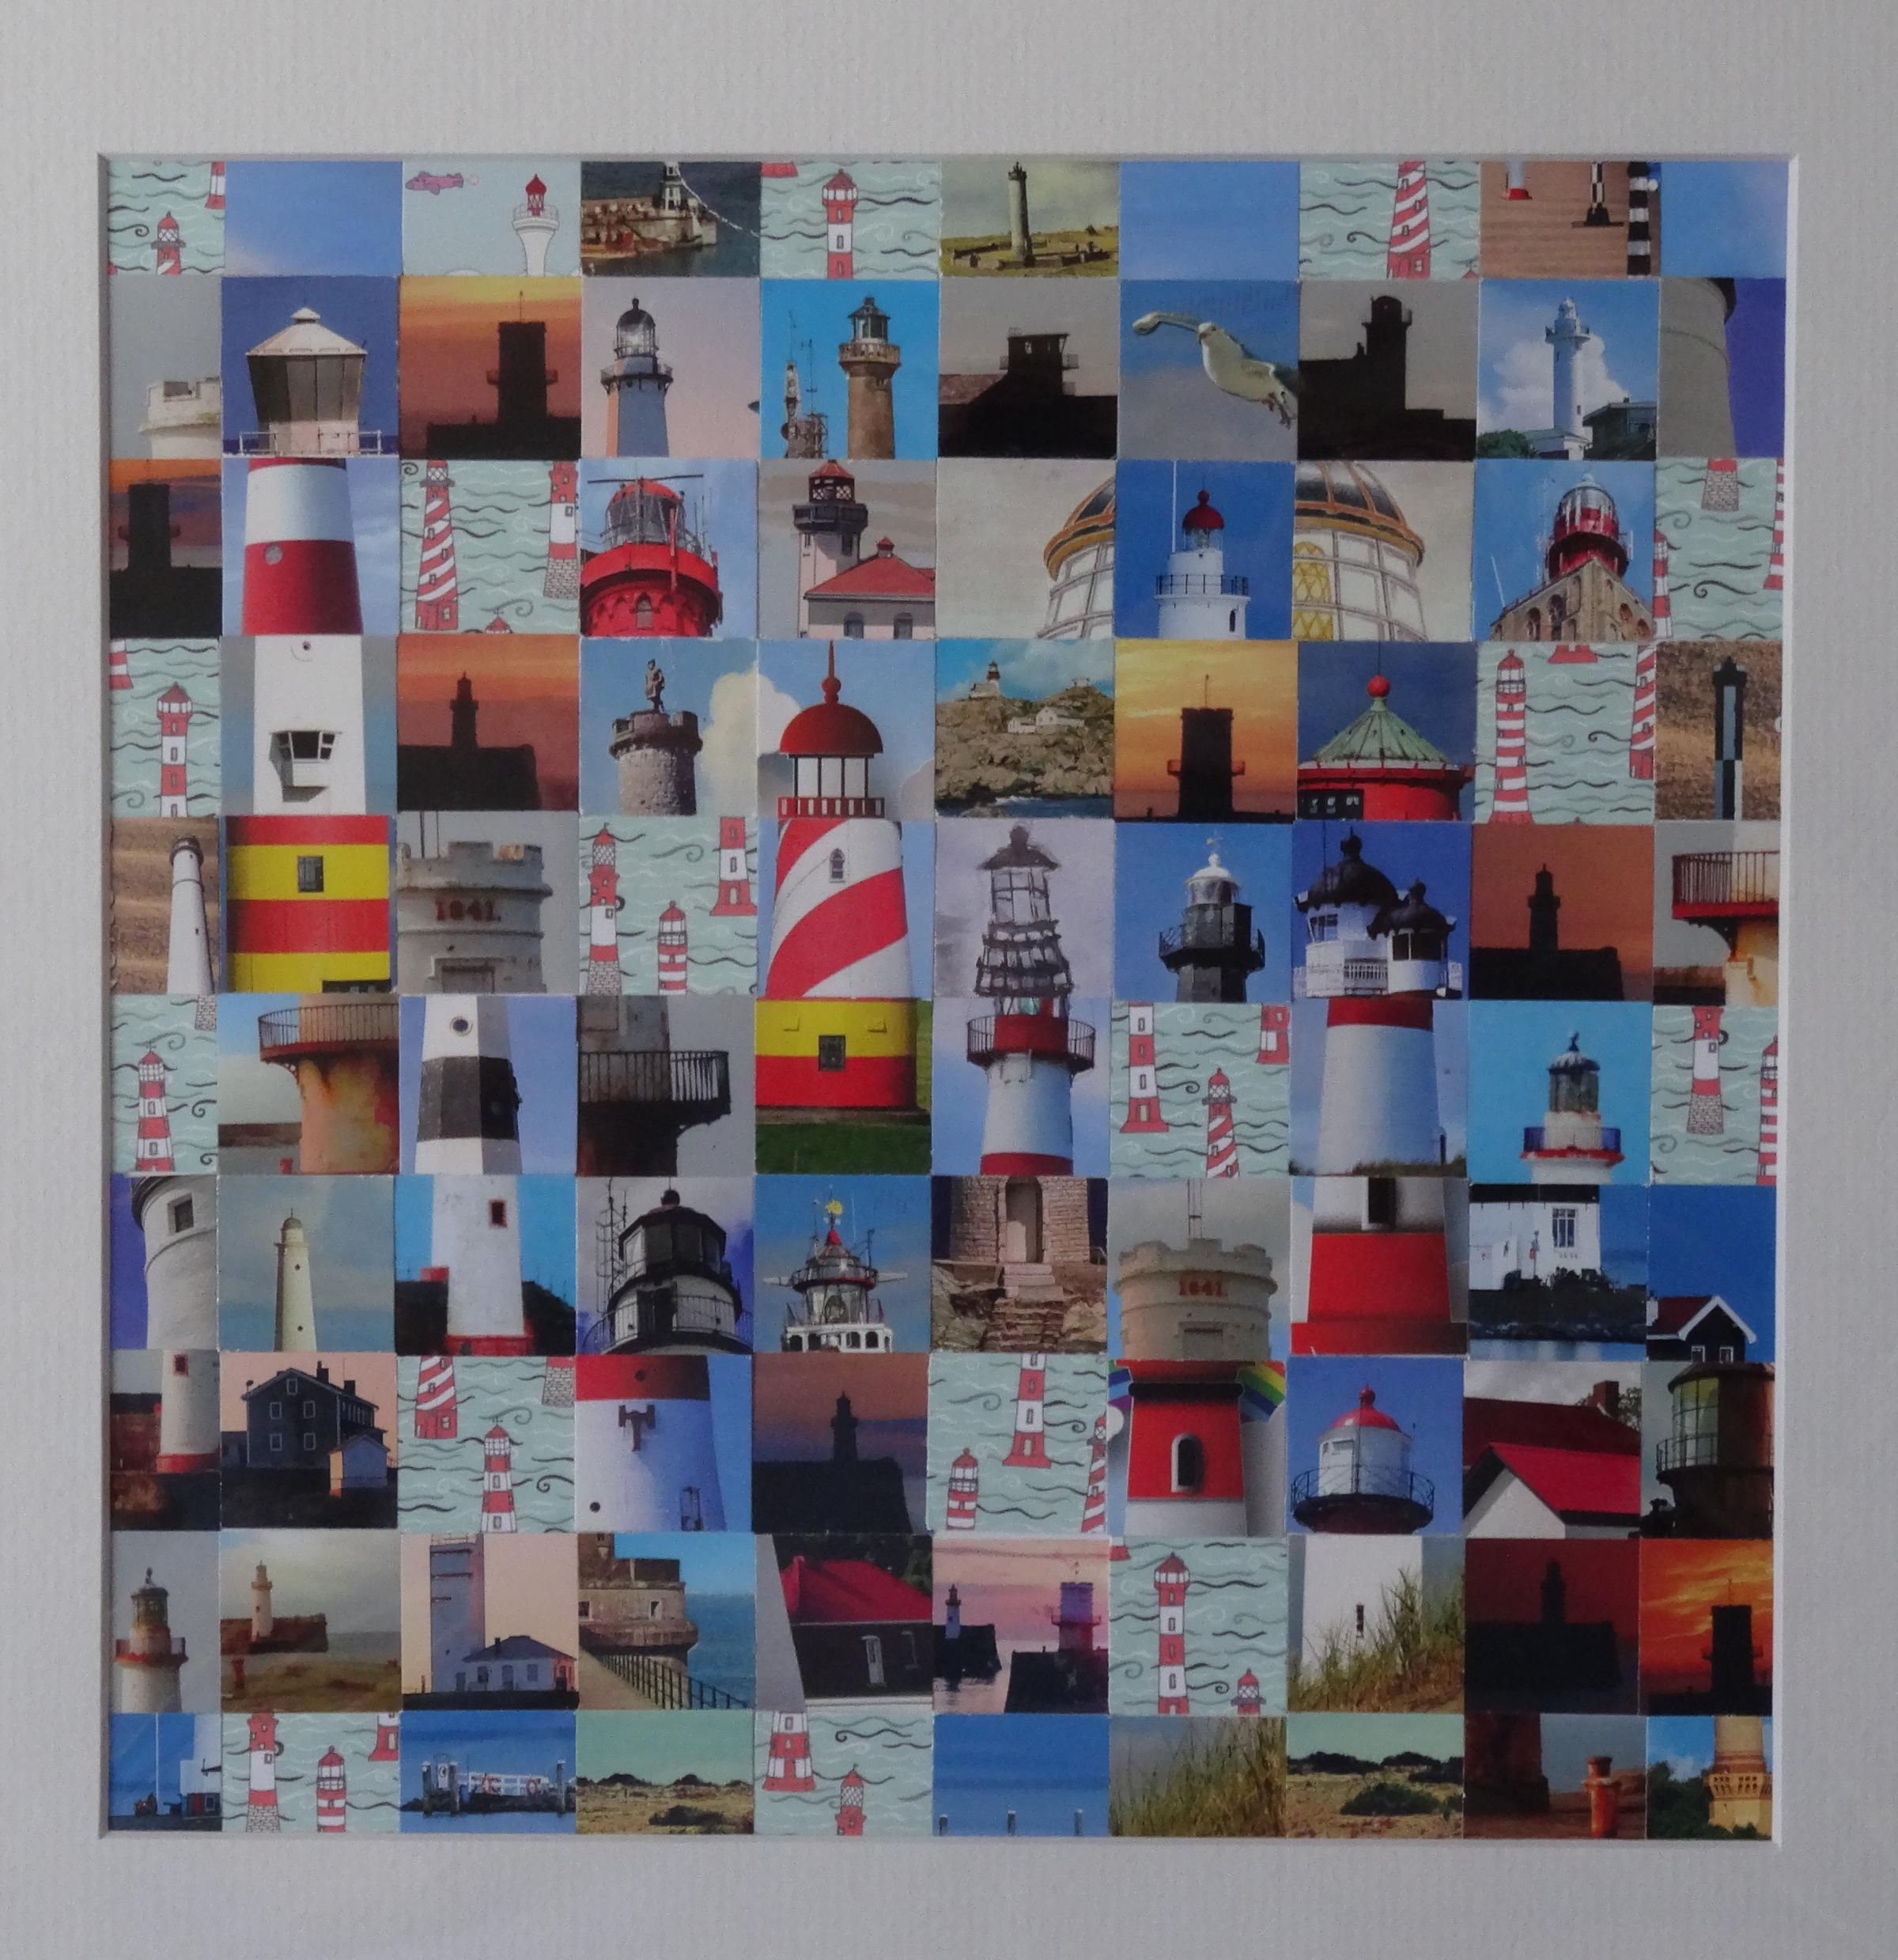 Natalie Burn's The Lightness of Being, one of the artist's collages featured in her 100 Squares exhibition running at The Old Courthouse, Shap